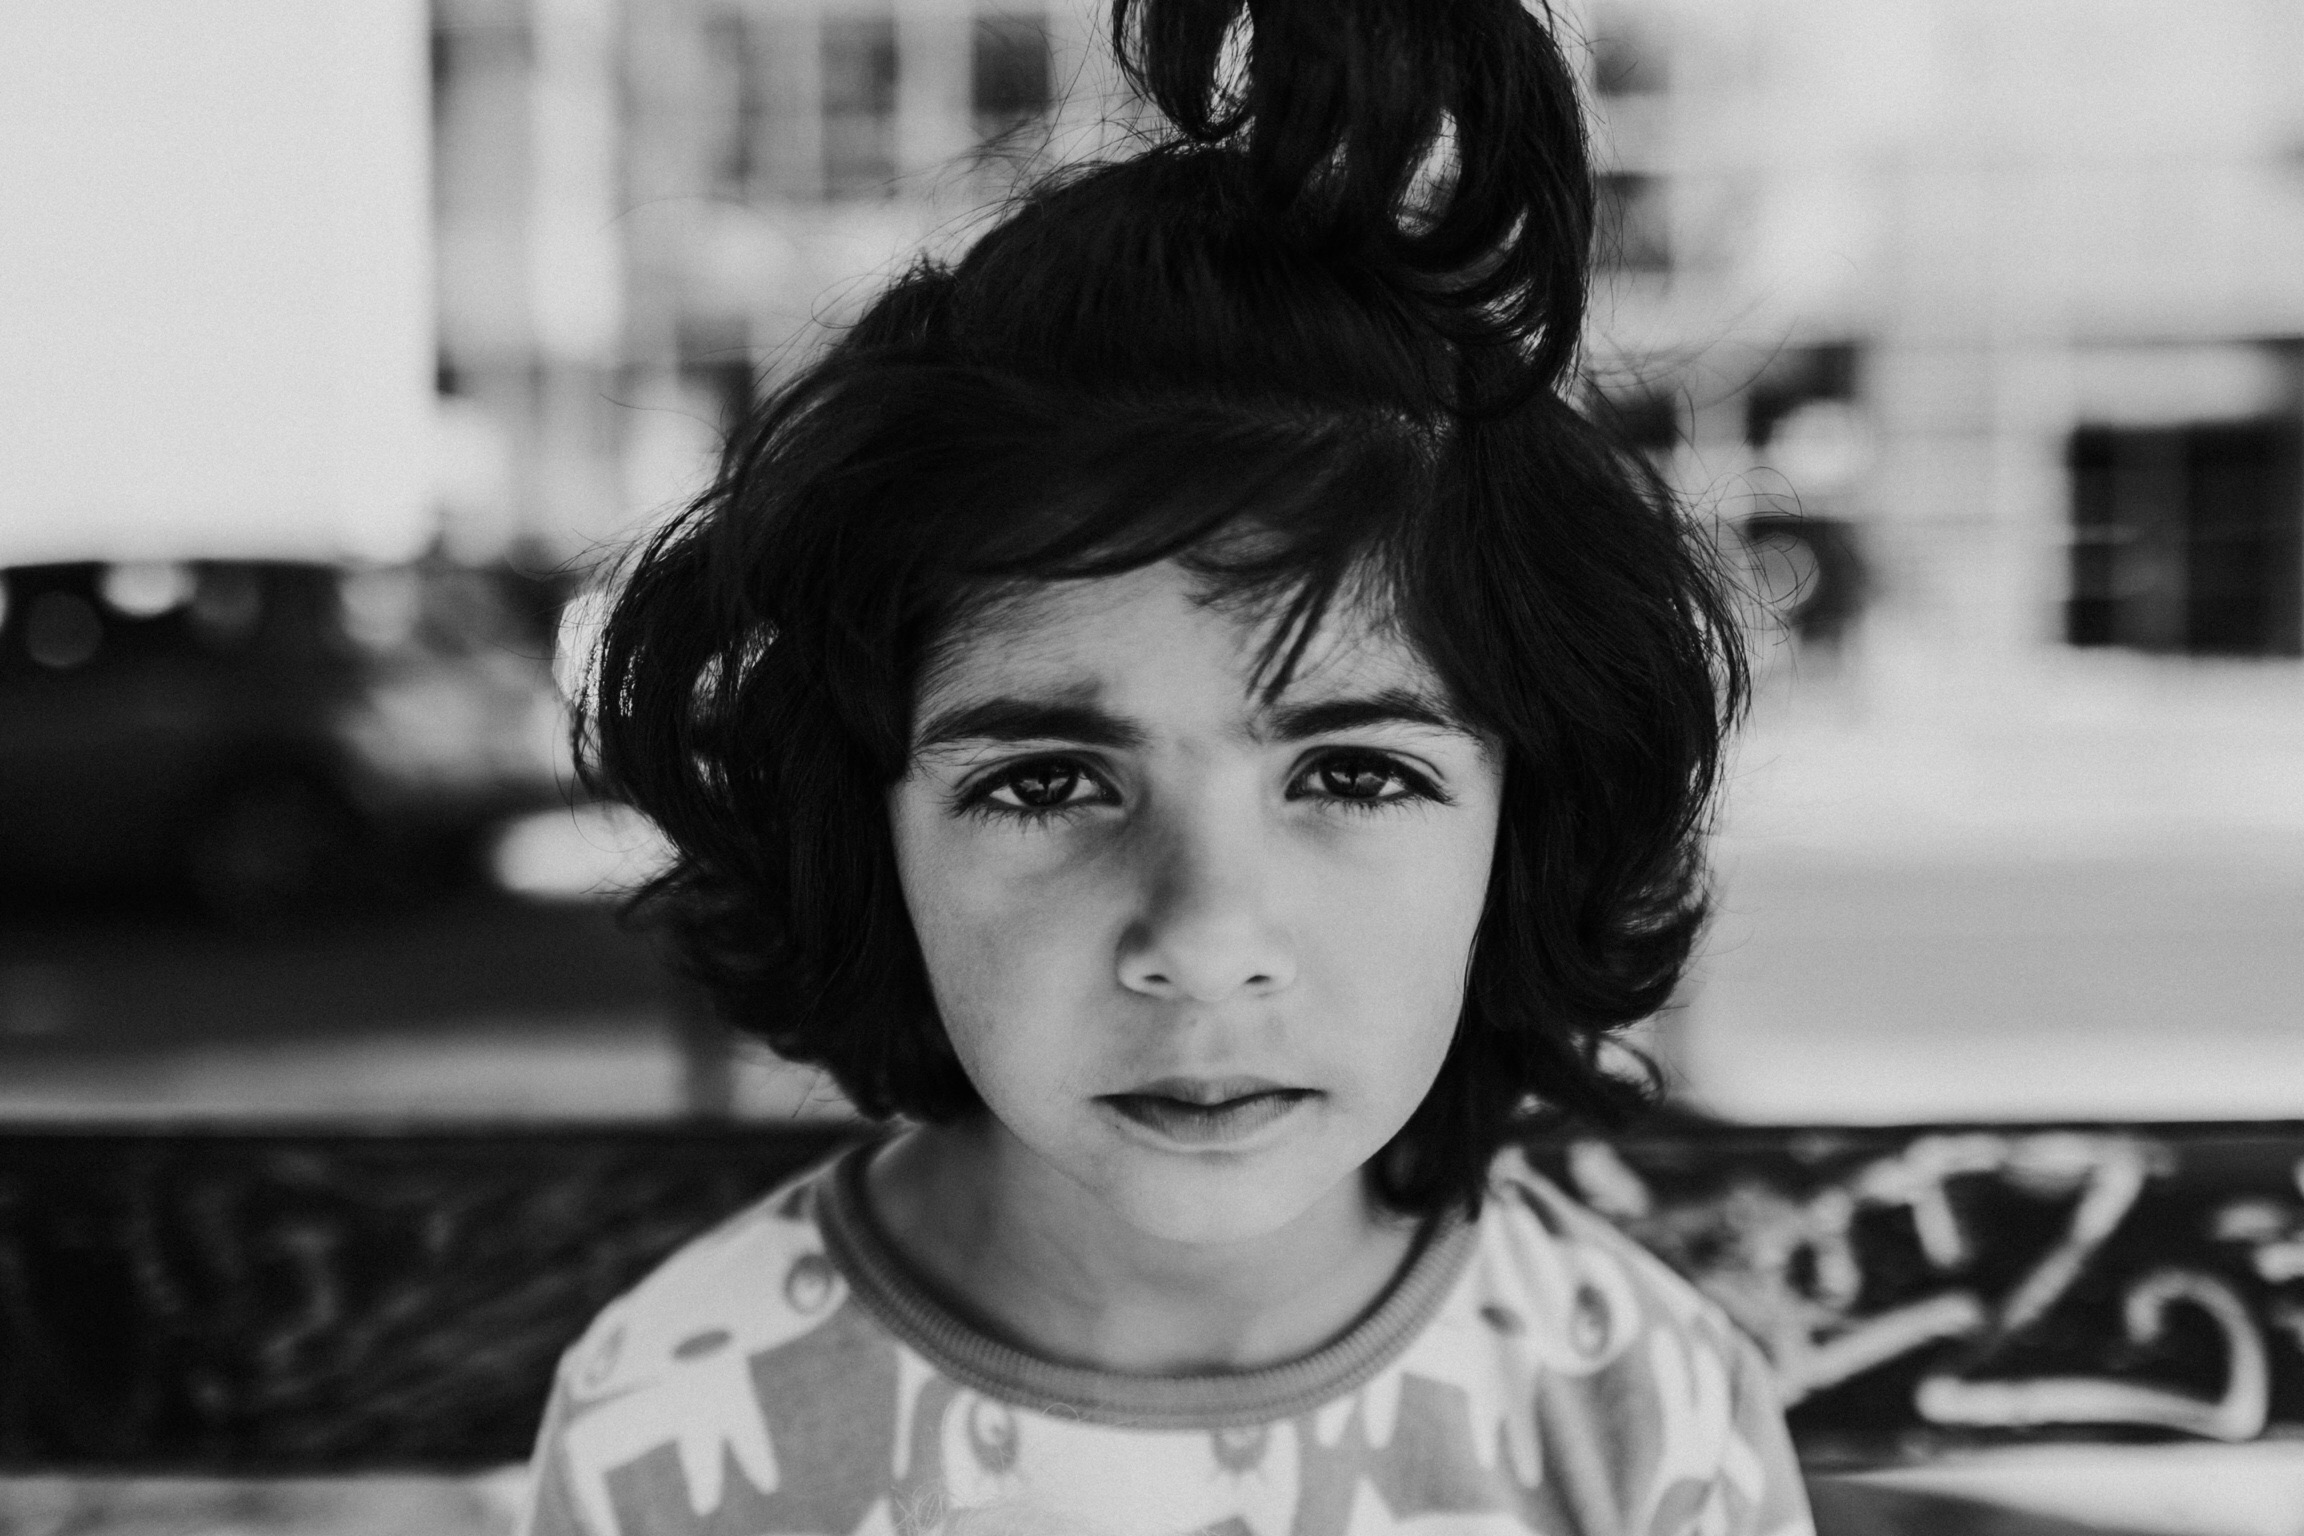 2, 5, 6, 7: 3 sisters ages 3, 5, and 7 recently arrived from Afghanistan. Their father, who asked to not be photographed, has been in hiding for 14 years.